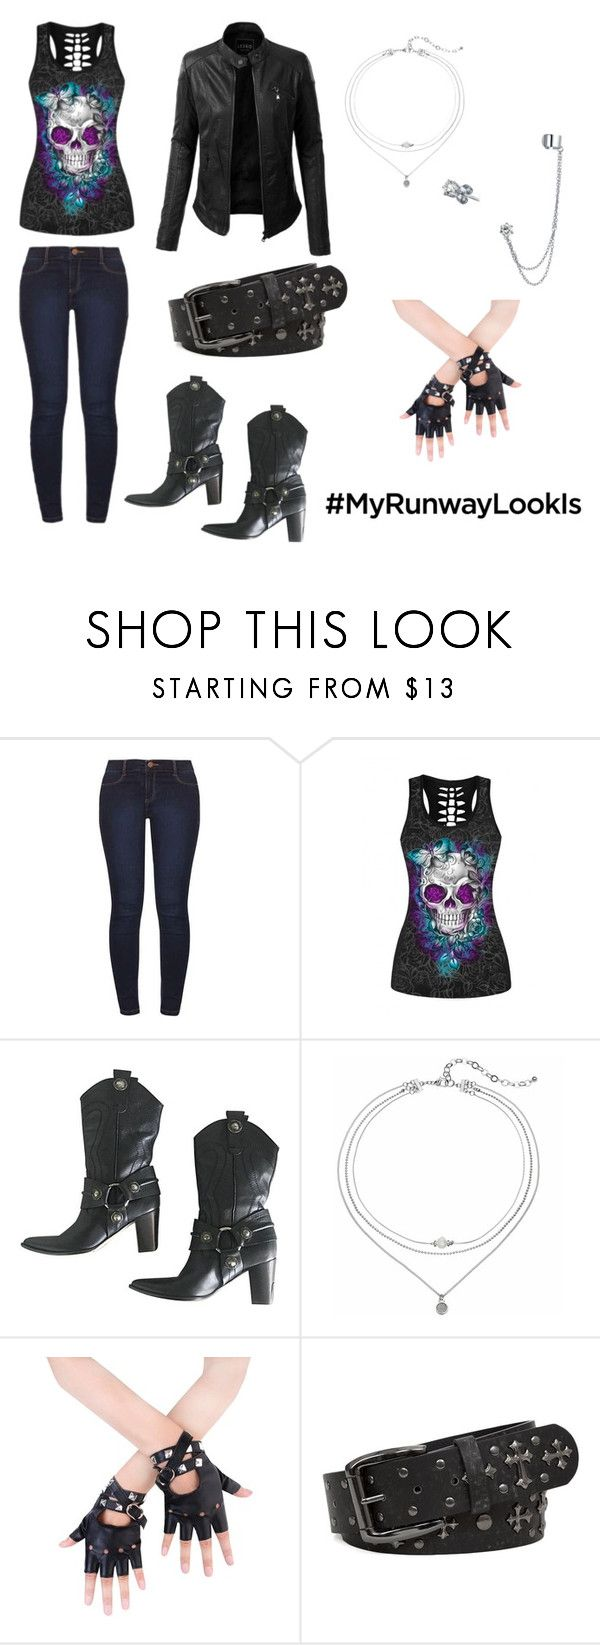 """Untitled #122"" by ziadvil on Polyvore featuring Dorothy Perkins, WithChic, LE3NO, Casadei, BKE, Bling Jewelry and MyRunawayLookIs"